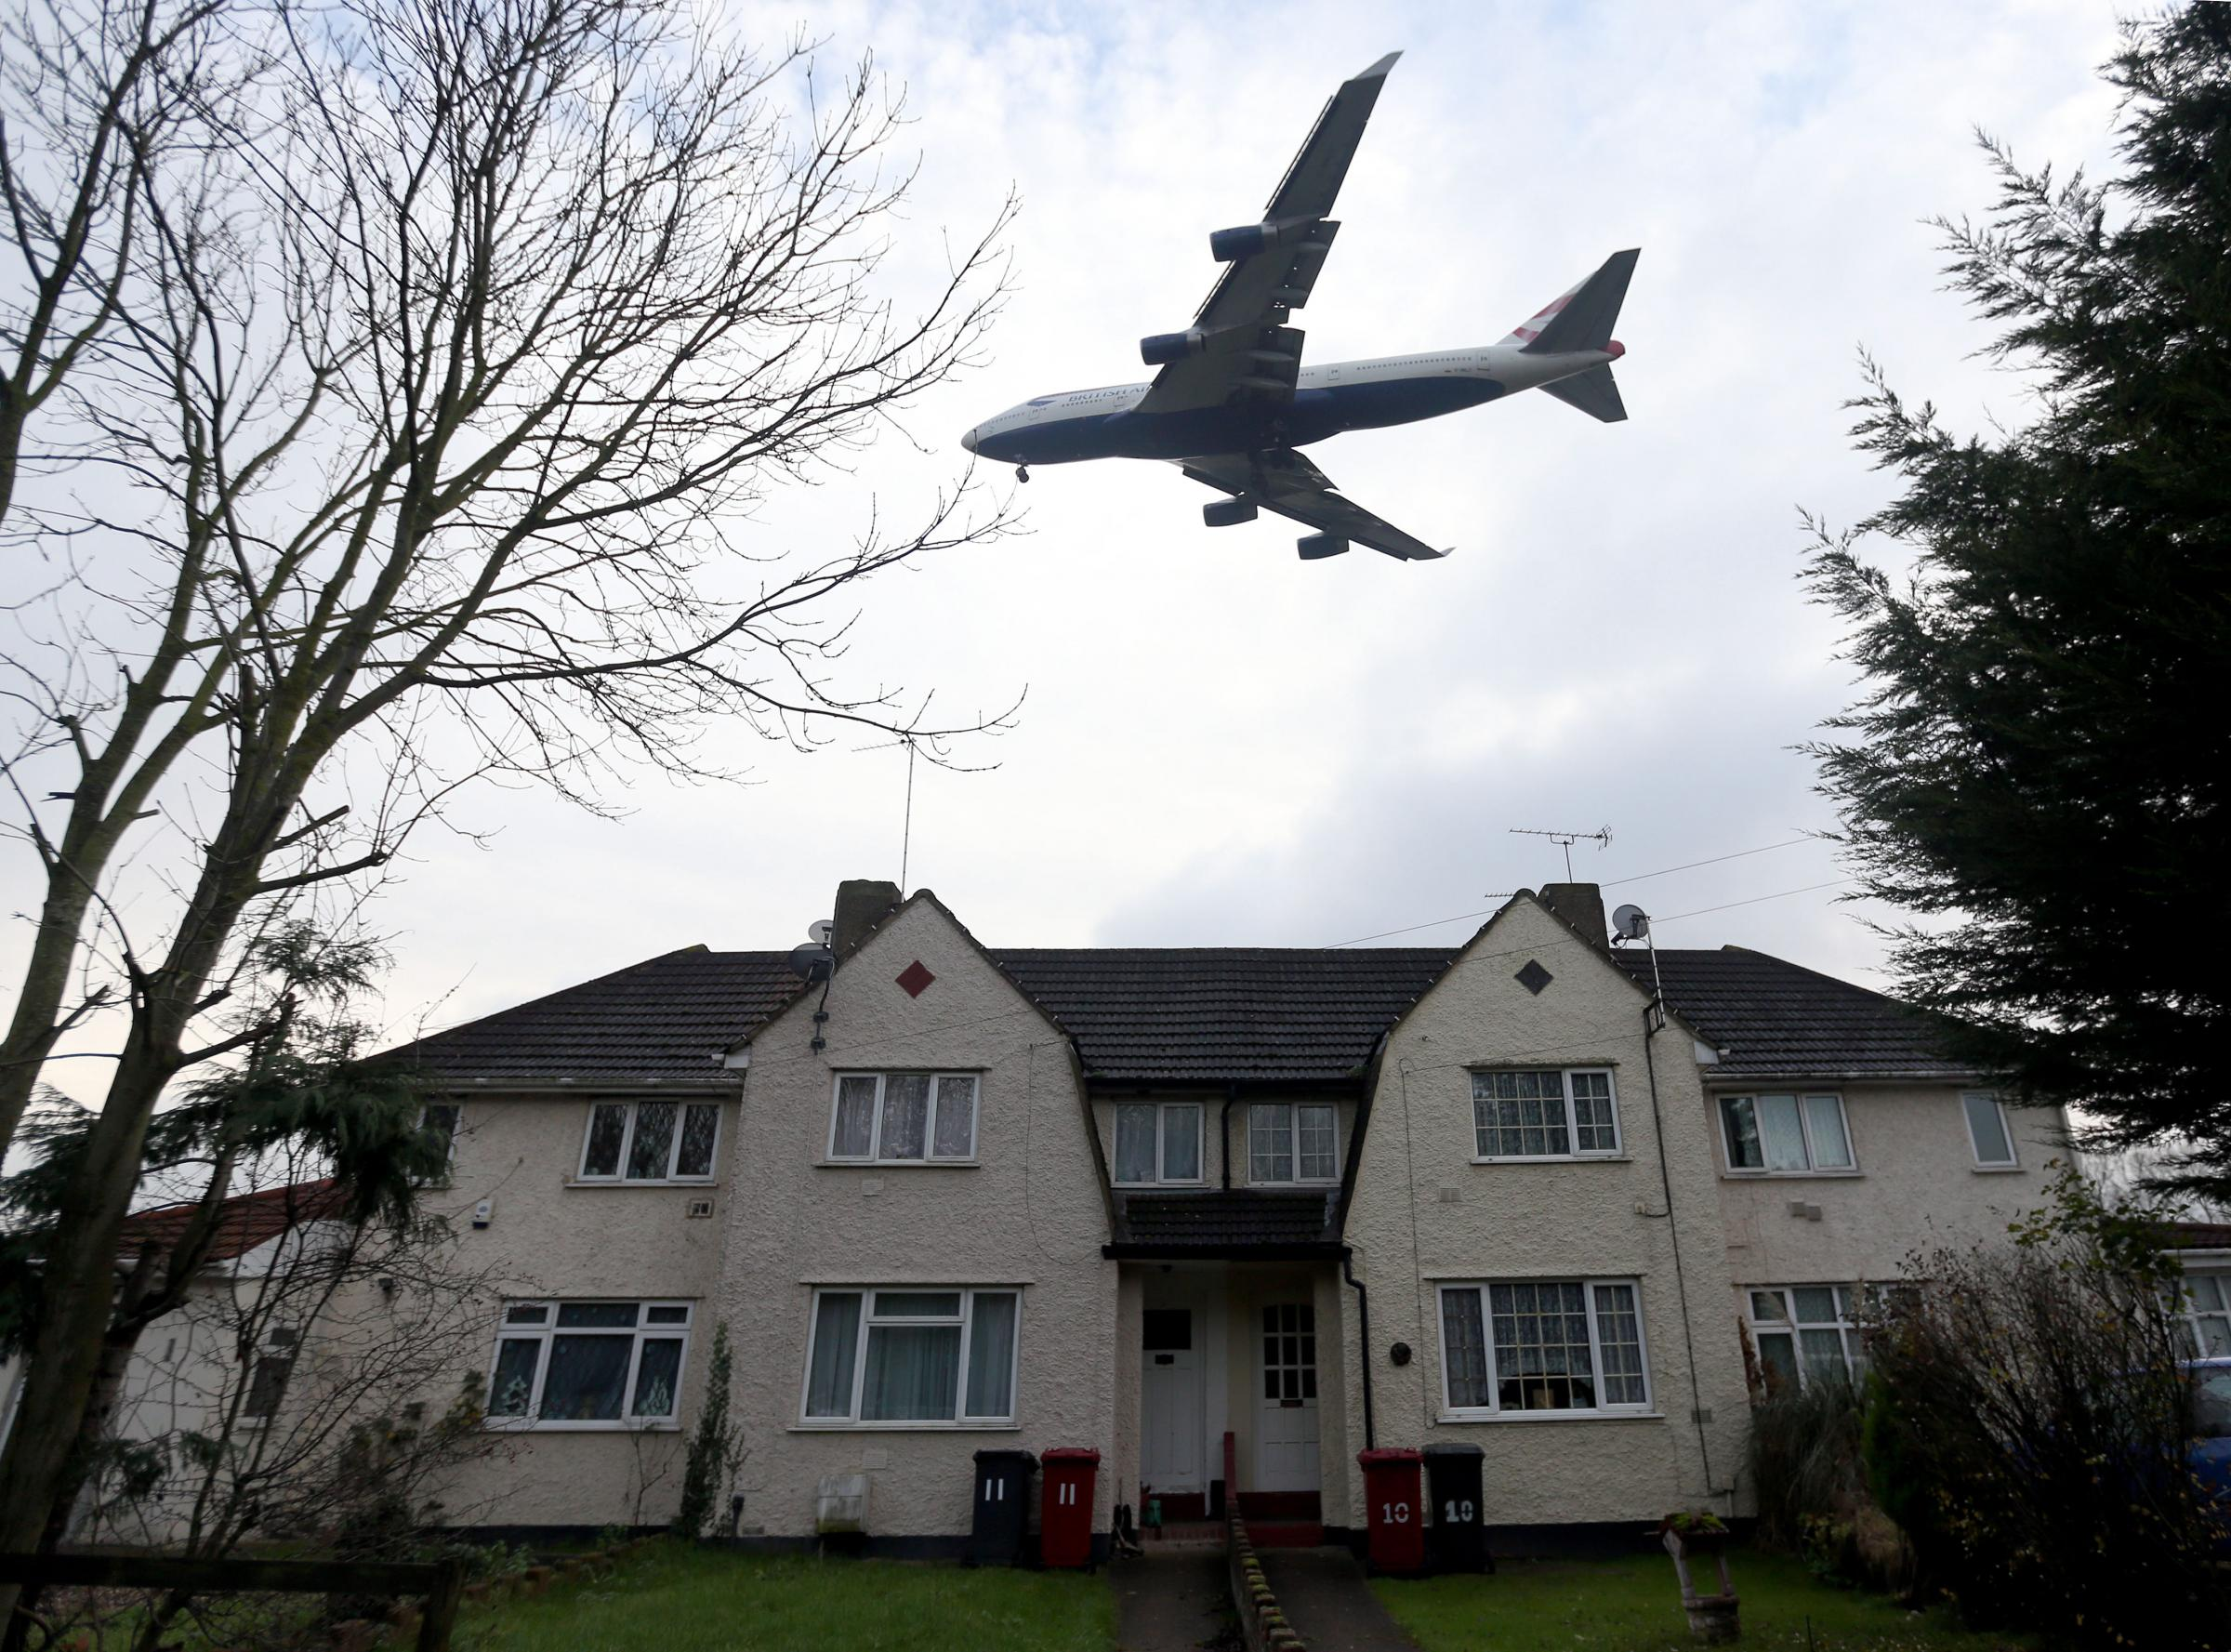 Heathrow: Two of three shortlisted options